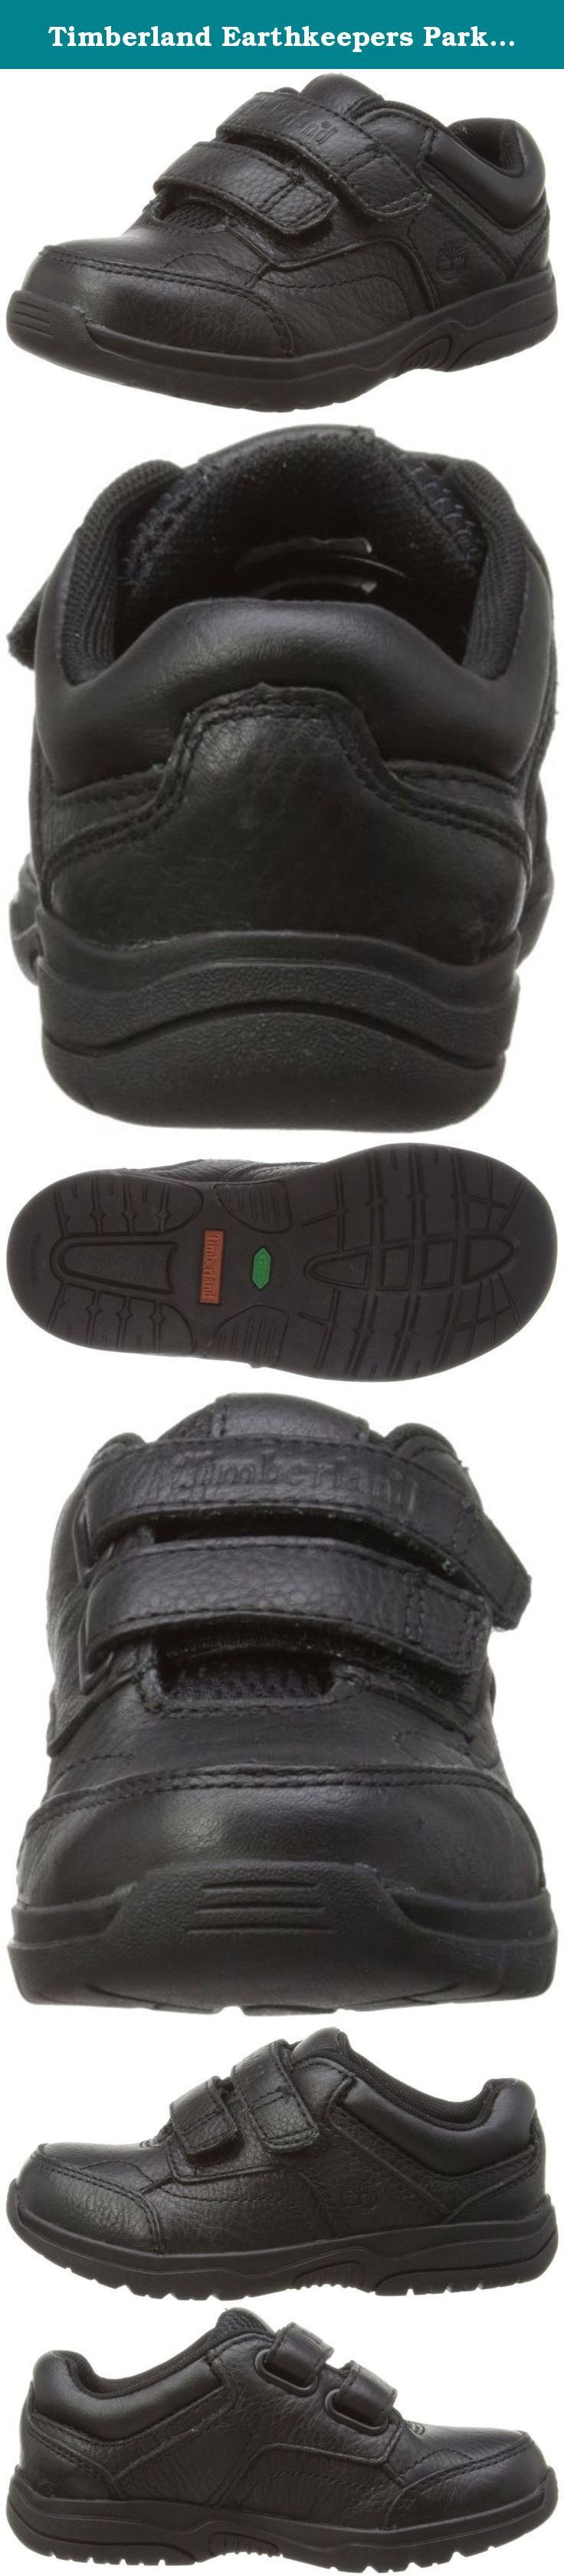 Timberland Earthkeepers Park Street Hook and Loop Oxford (Toddler/Little Kid/Big Kid),Black,8 M US Toddler. Crash Blaster technology and an Ortholite footbed provide all-day cushioning and comfort for kids.